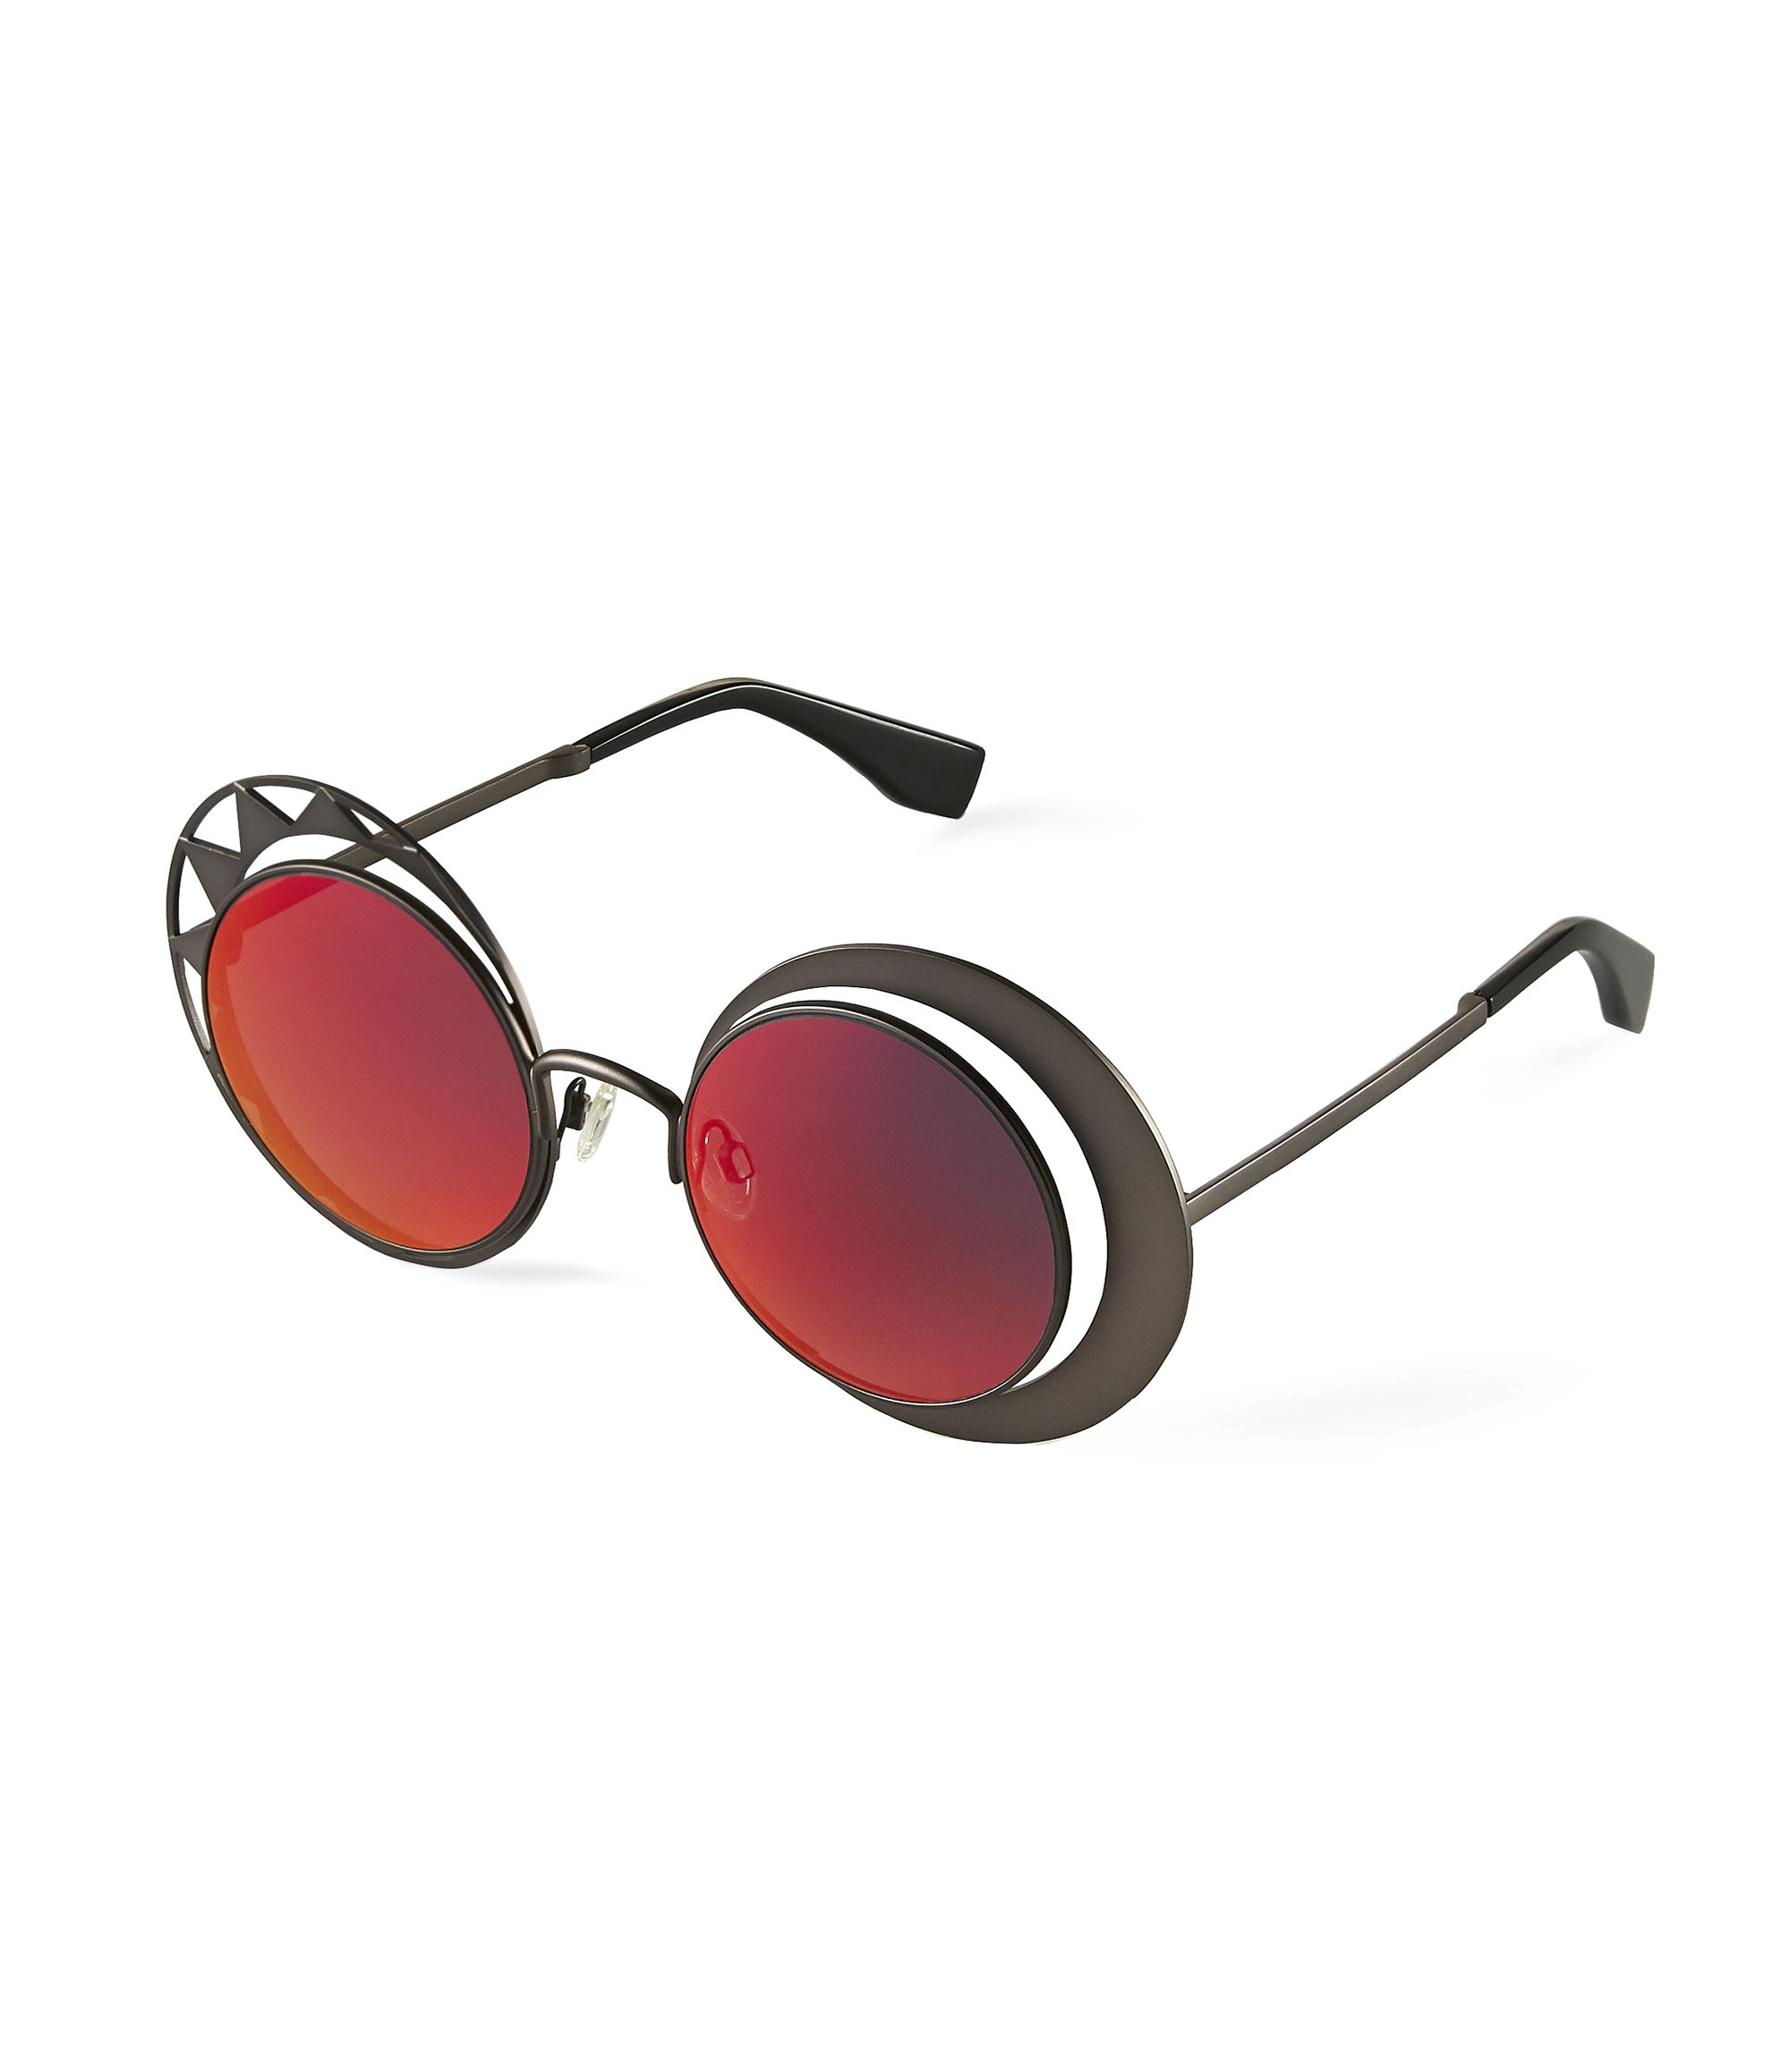 b9b6c84e10 VIVIENNE WESTWOOD SUN AND MOON SUNGLASSES RED VW9642RES.  viviennewestwood